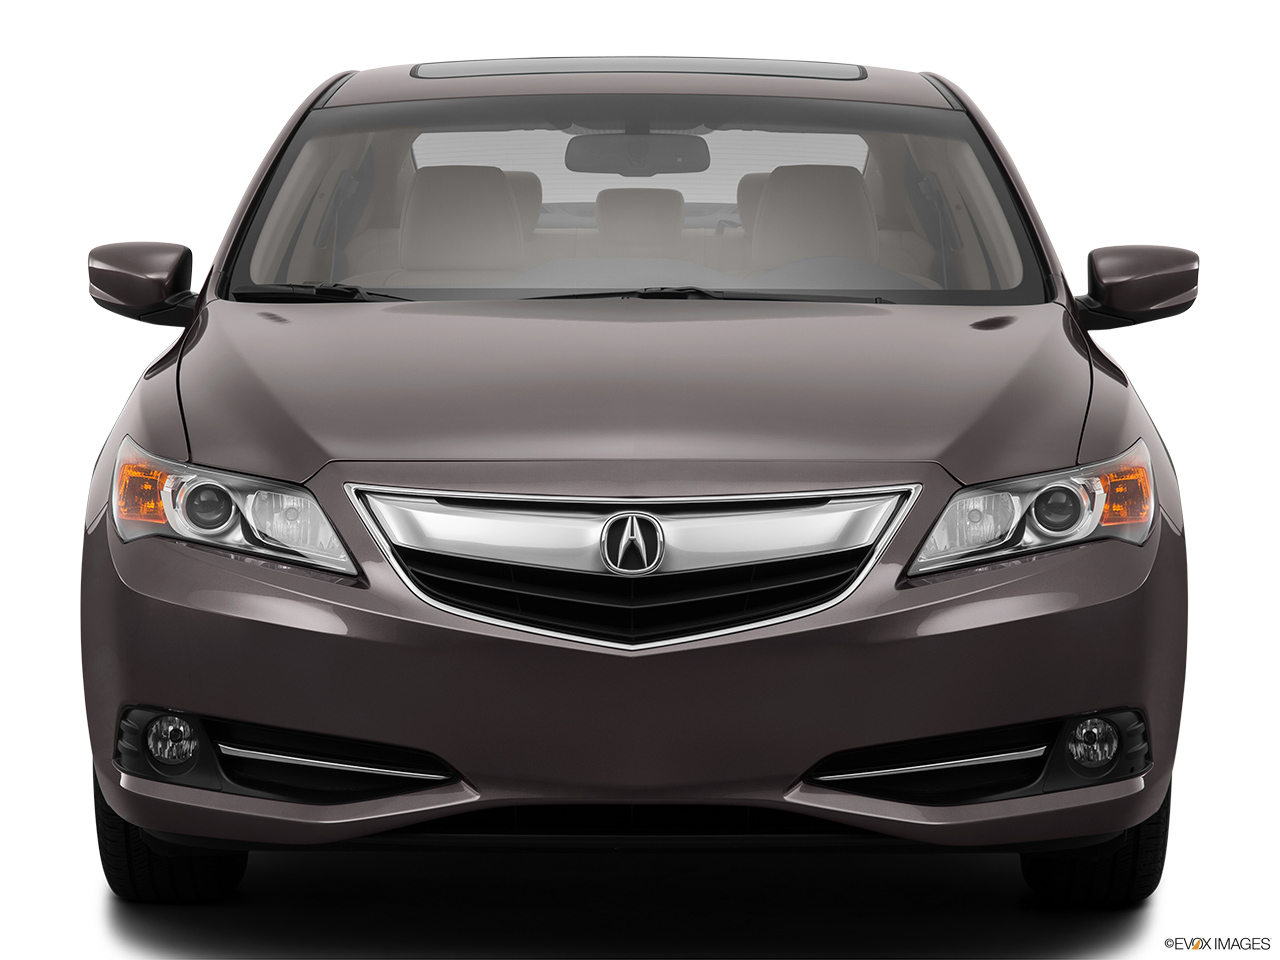 2014 Acura ILX Hybrid Base Low/wide front.